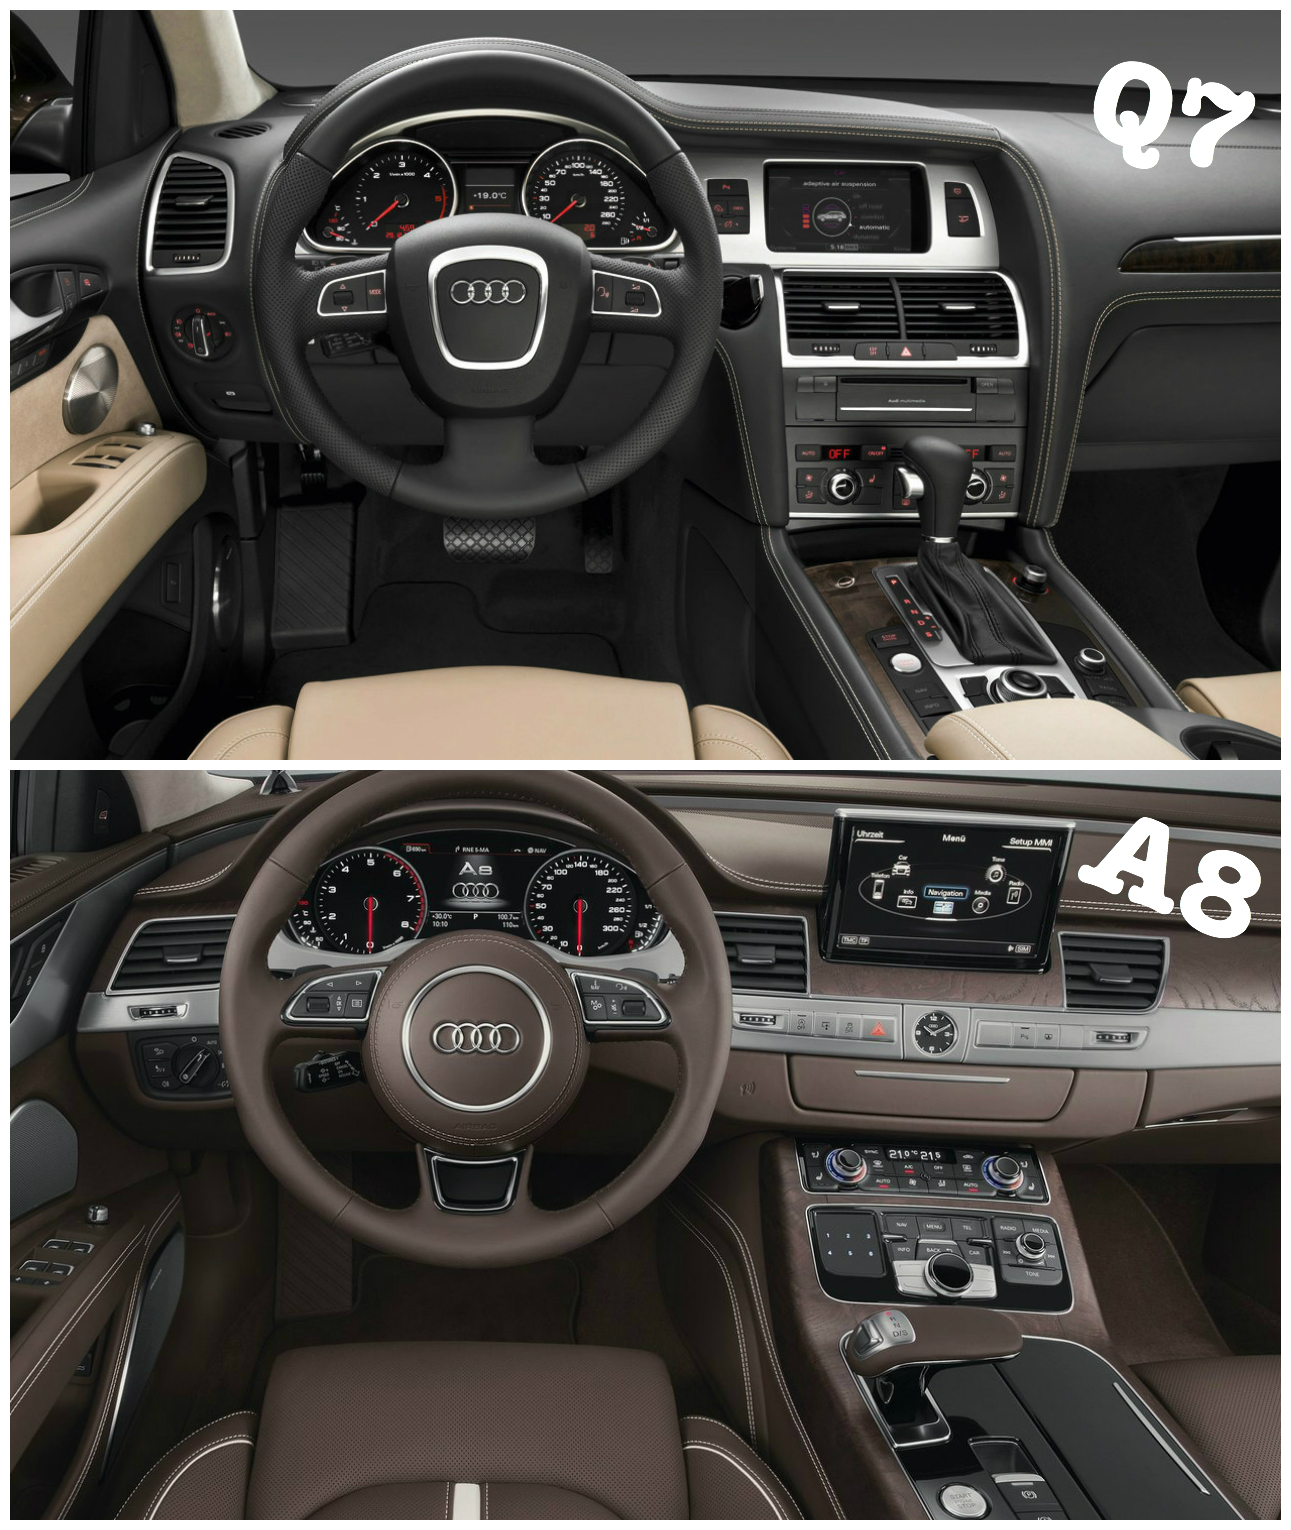 Bmw: 2016 Audi Q7 Interior Revealed In Latest Spyshots: New MMI